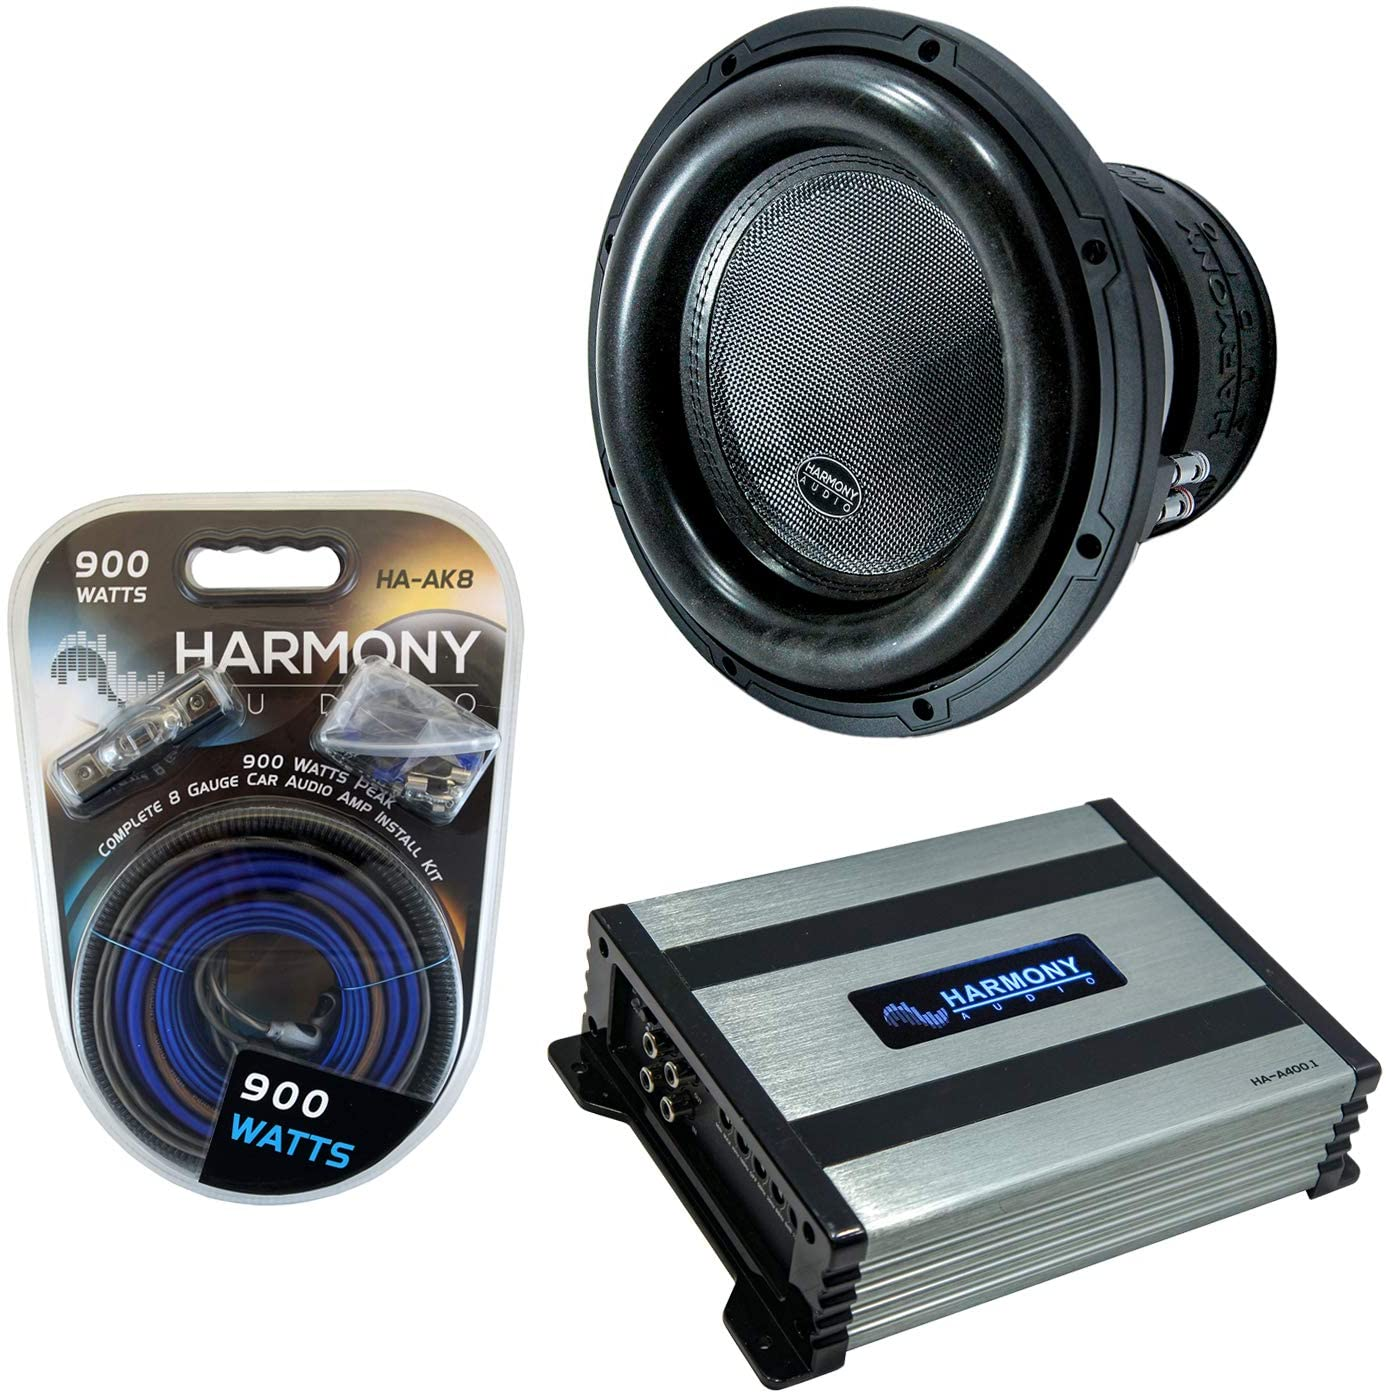 Harmony Audio HA-ML121 Monolith 12 Competition Sub 3000W Subwoofer Bundle with HA-A800.1 Amplifier & Amp Kit